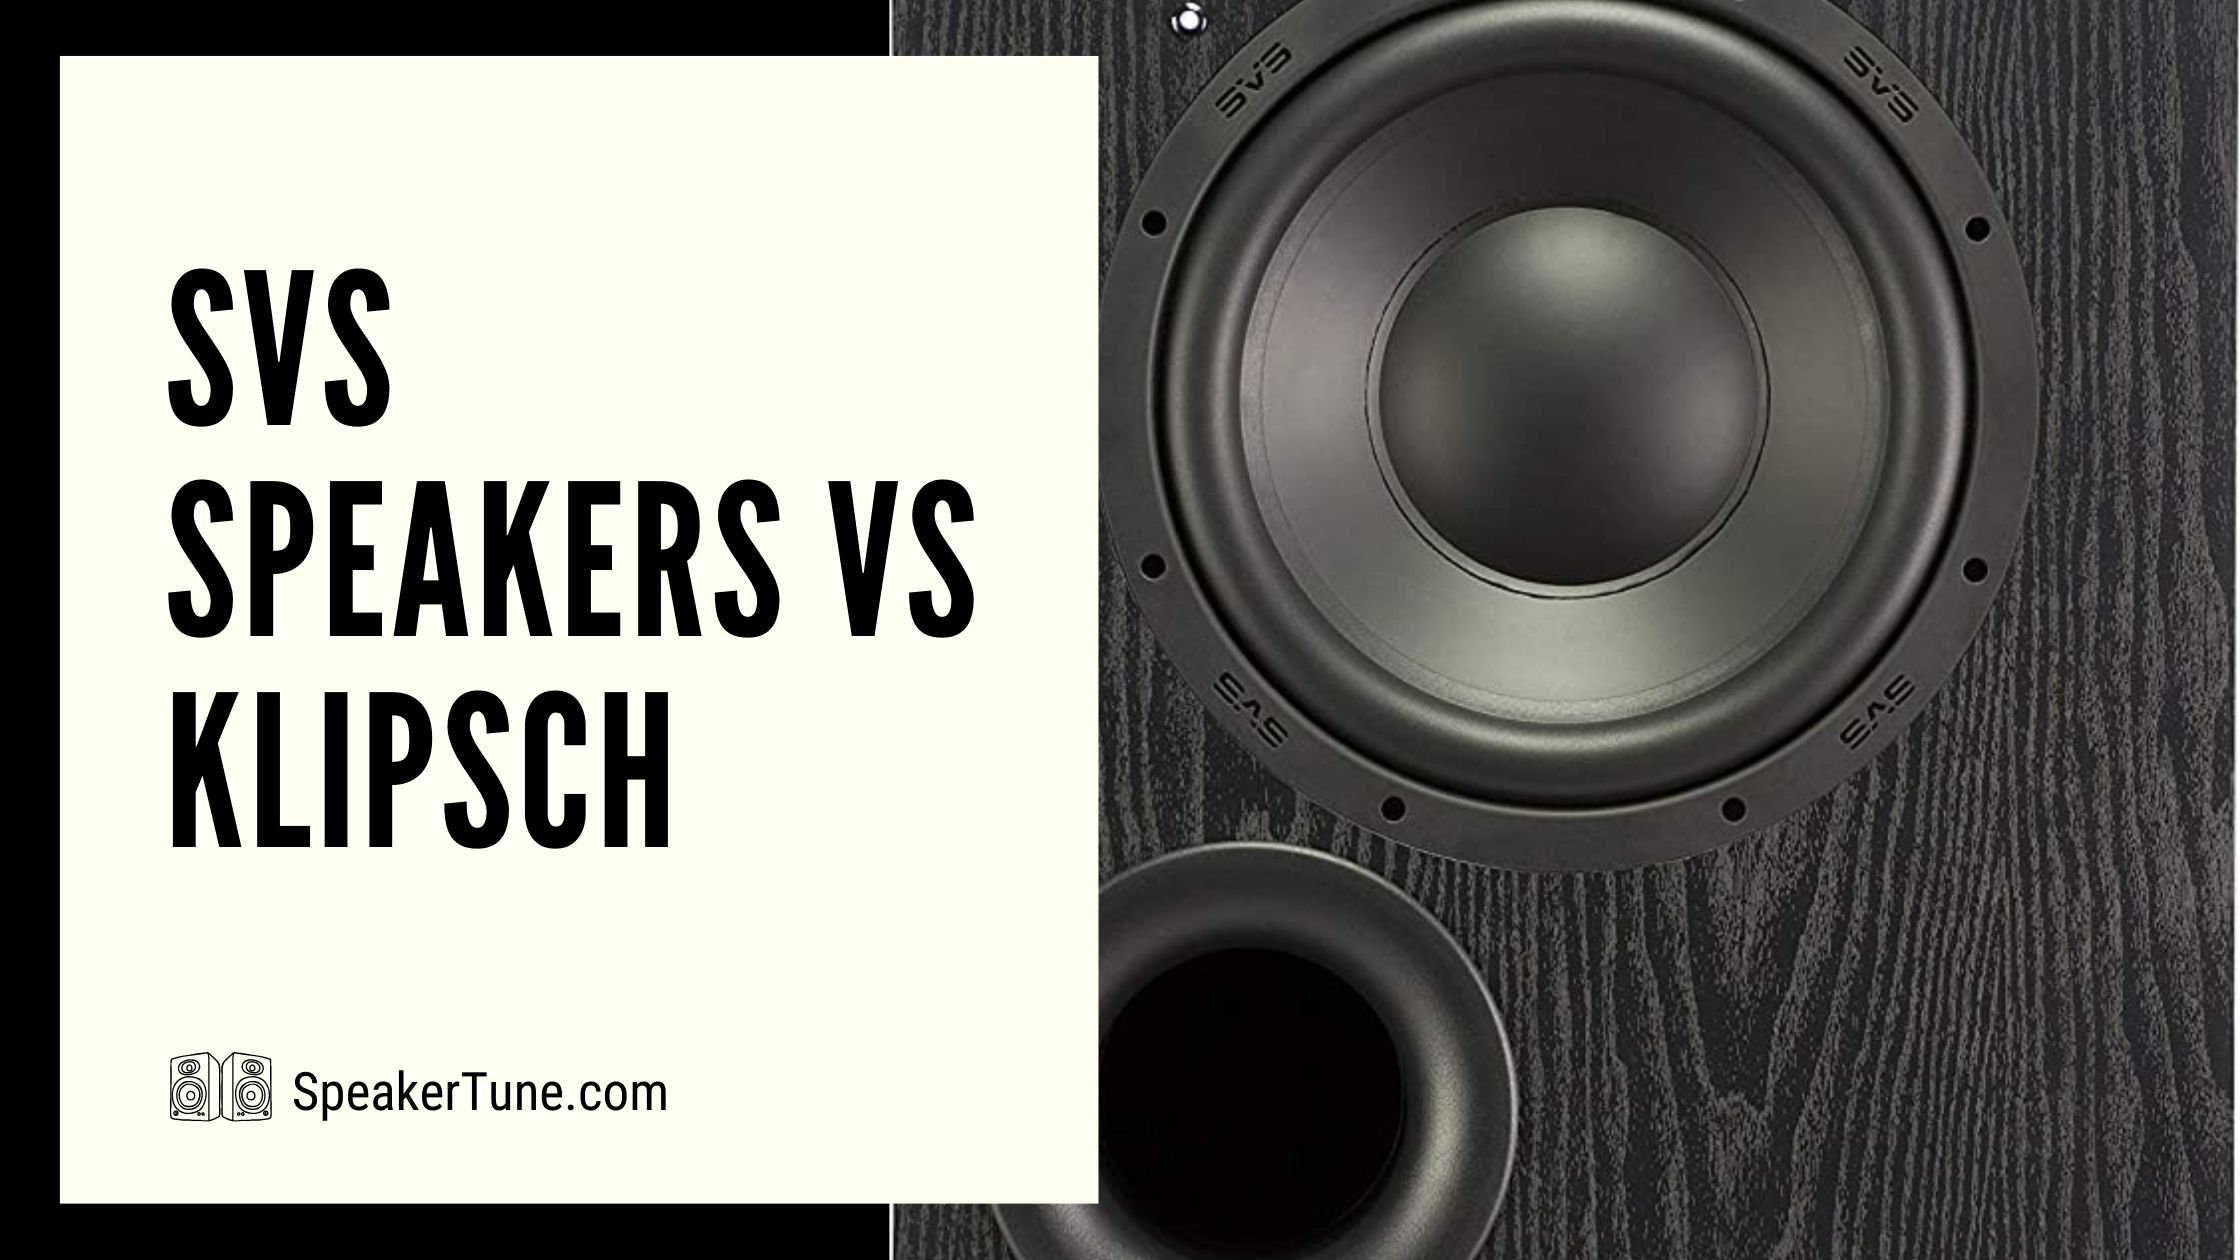 ST-SVS-speakers-vs-klipsch